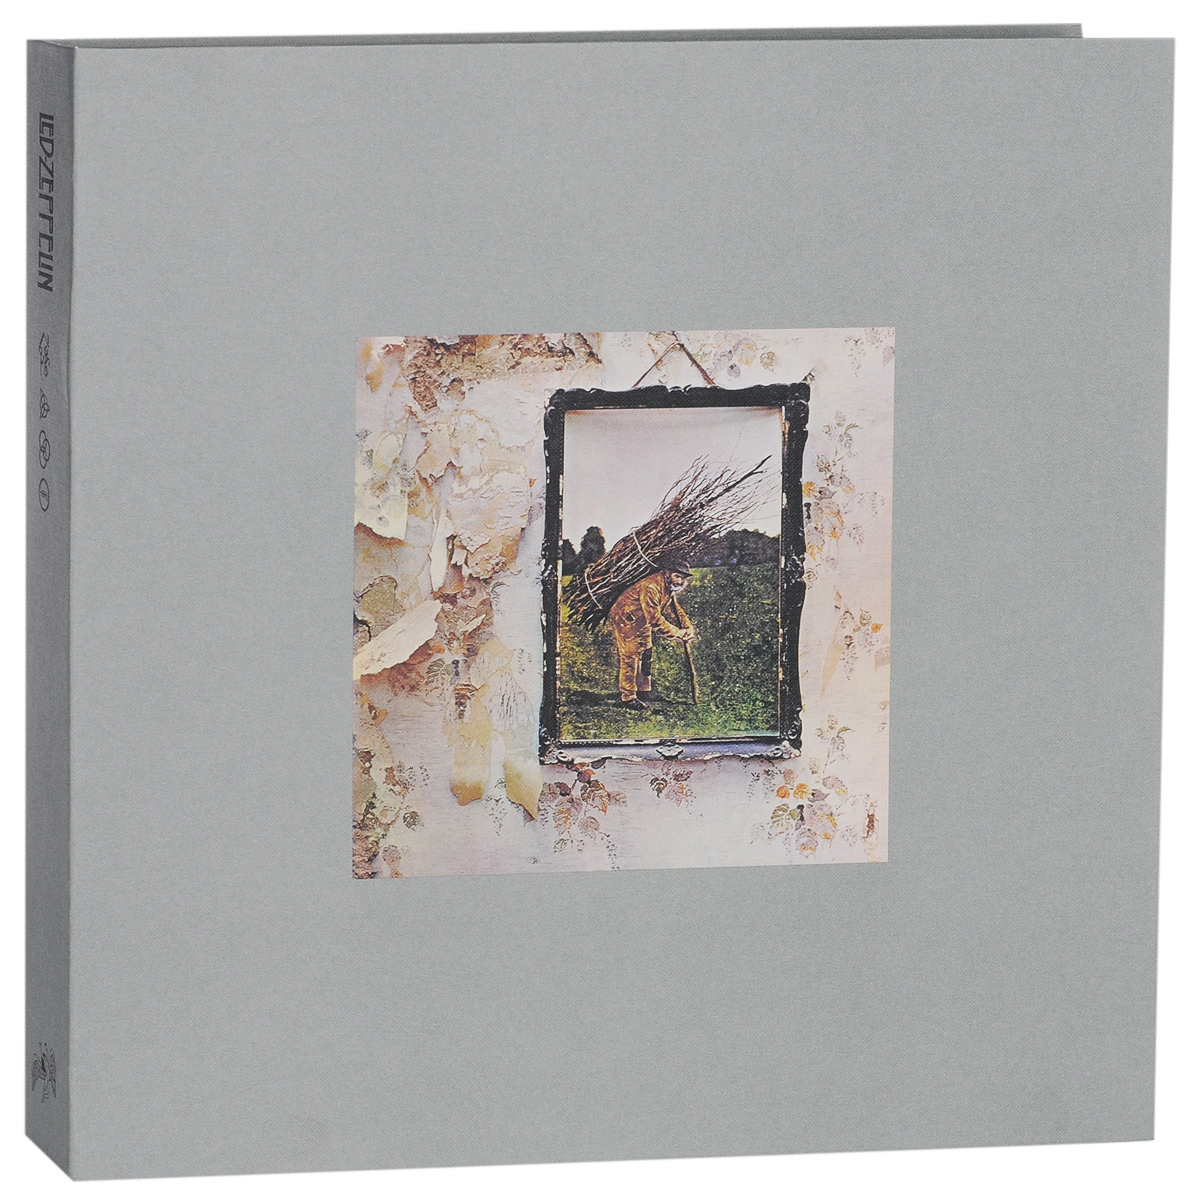 Фото - Led Zeppelin Led Zeppelin. IV. Super Deluxe Edition (2 LP + 2 CD) cd led zeppelin ii deluxe edition